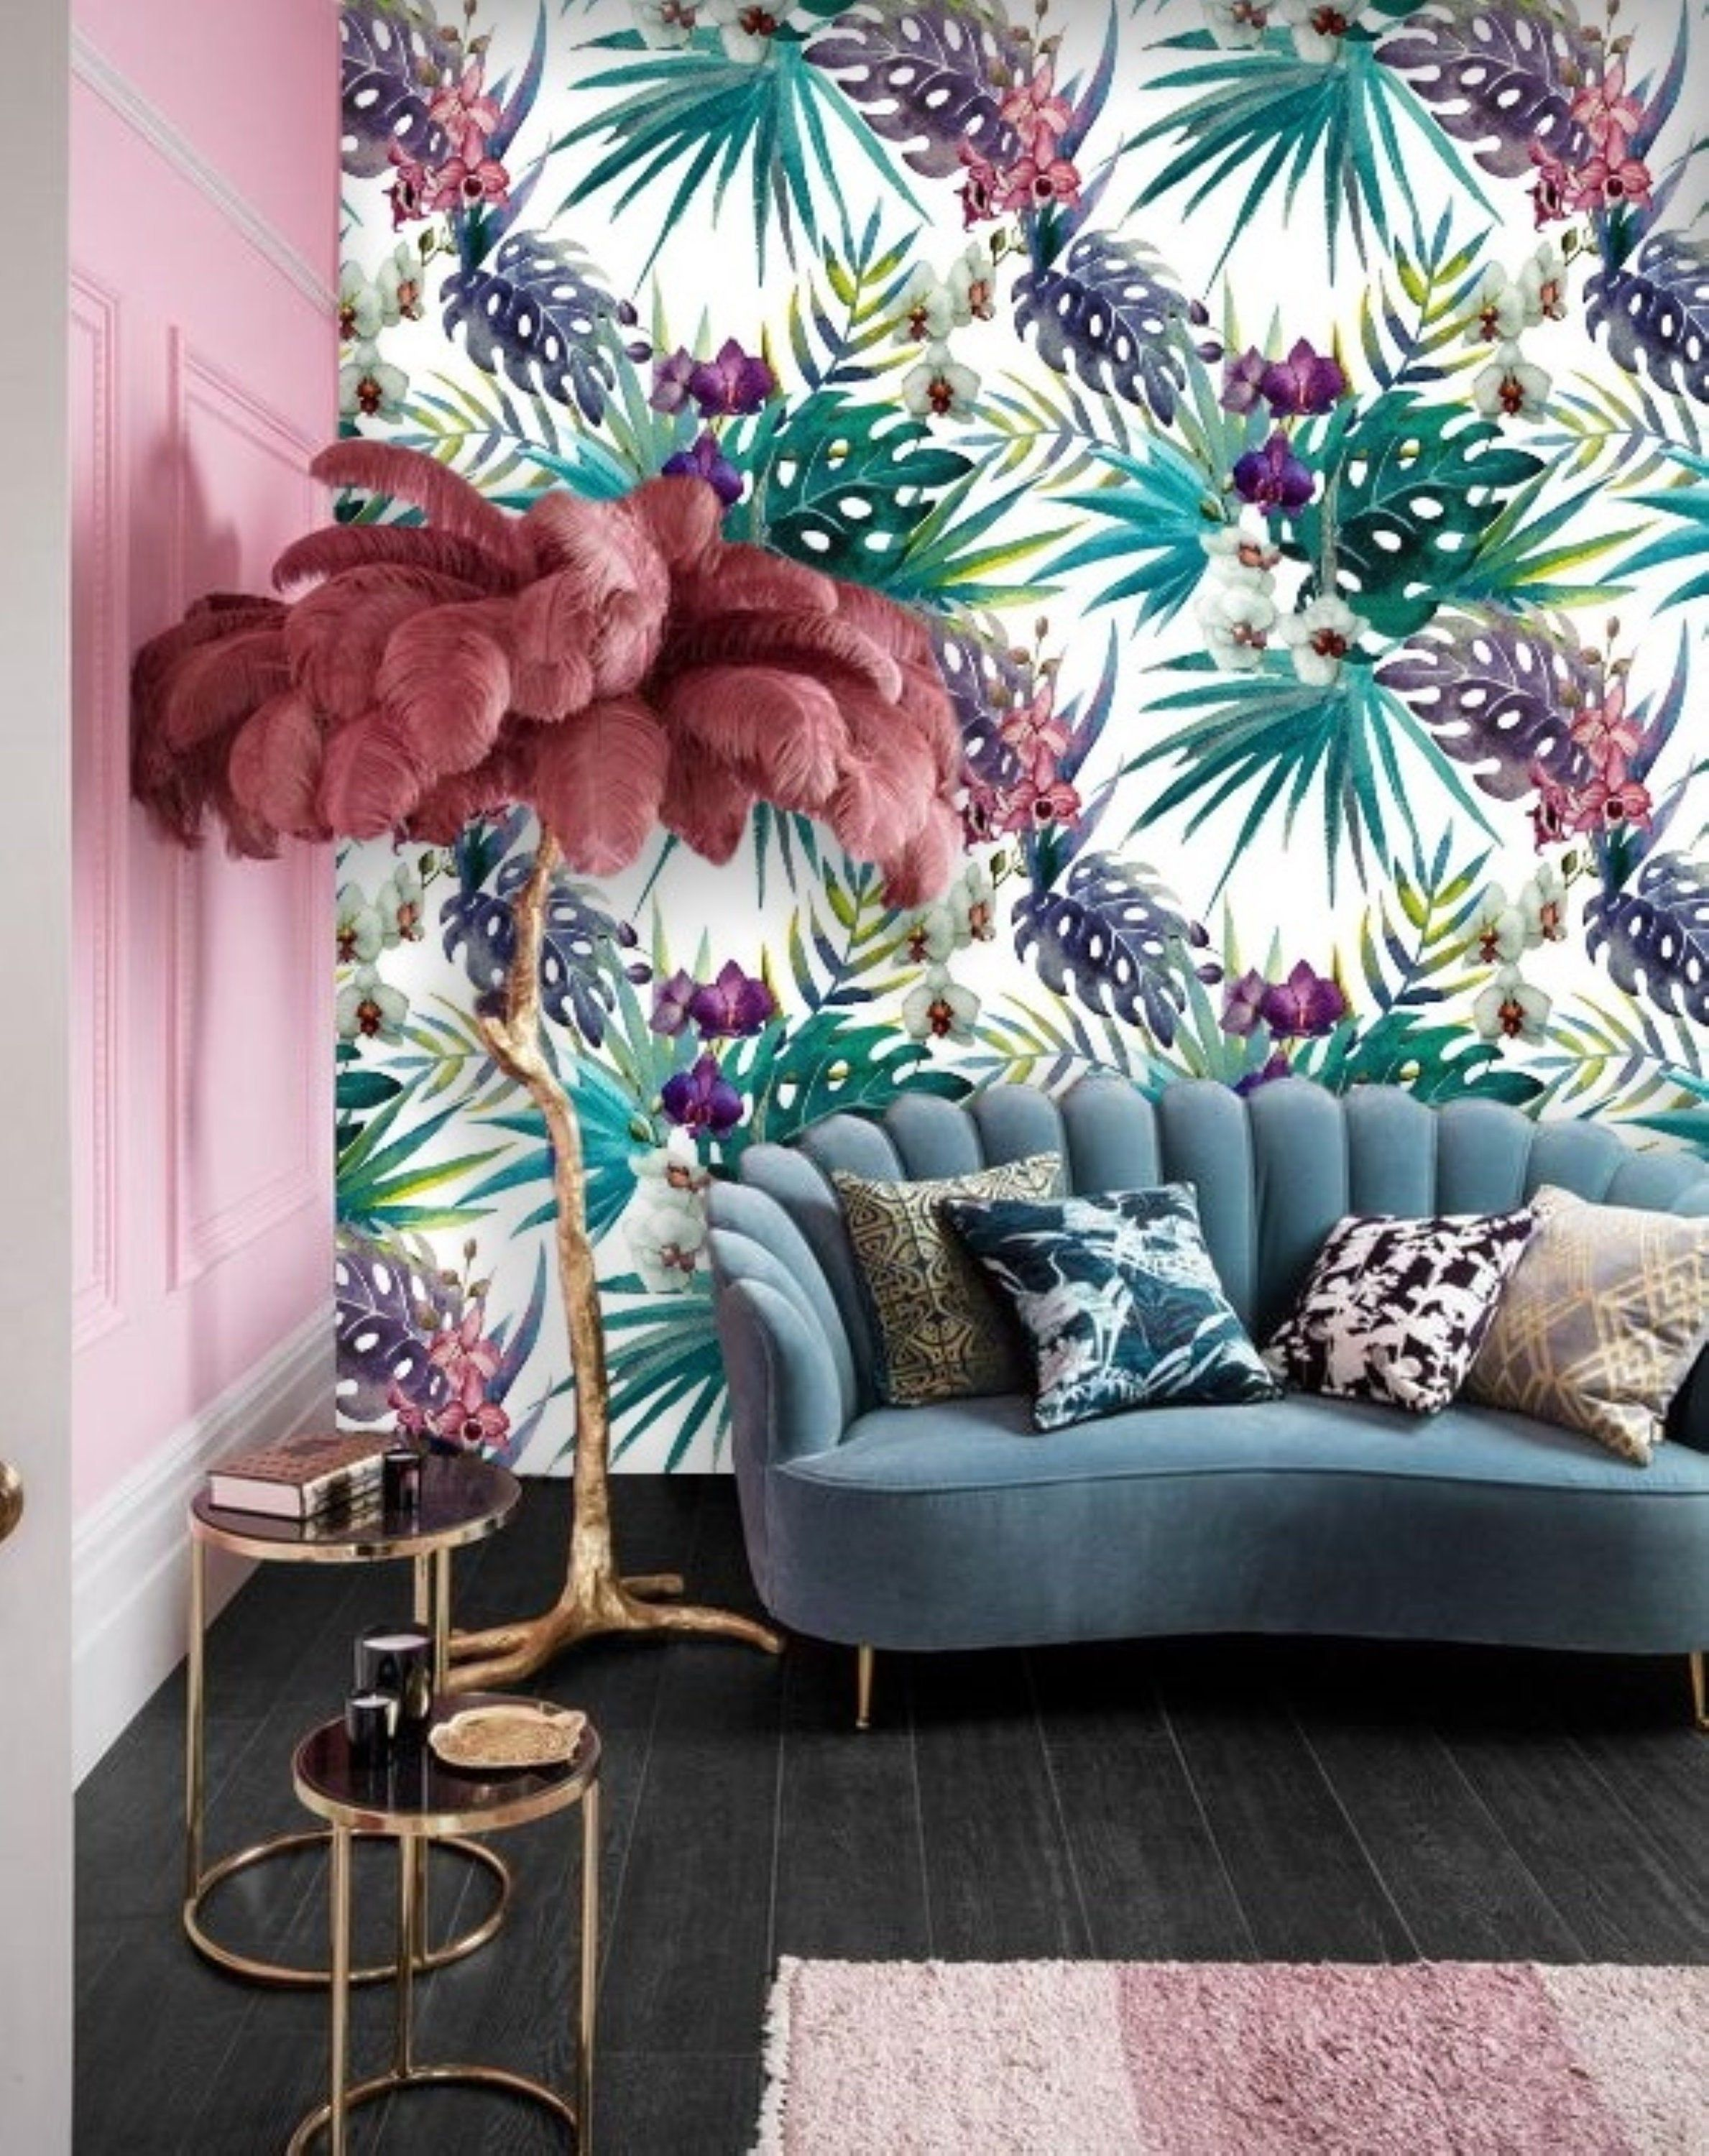 Peel Stick Removable Wallpaper Mural Remove Tropical Leaf Wallpaper Colorful Self Adhesive Wallpaper Orchid Floral Wall Paper Jungle 60 In 2020 Mural Wallpaper Leaf Wallpaper Removable Wallpaper